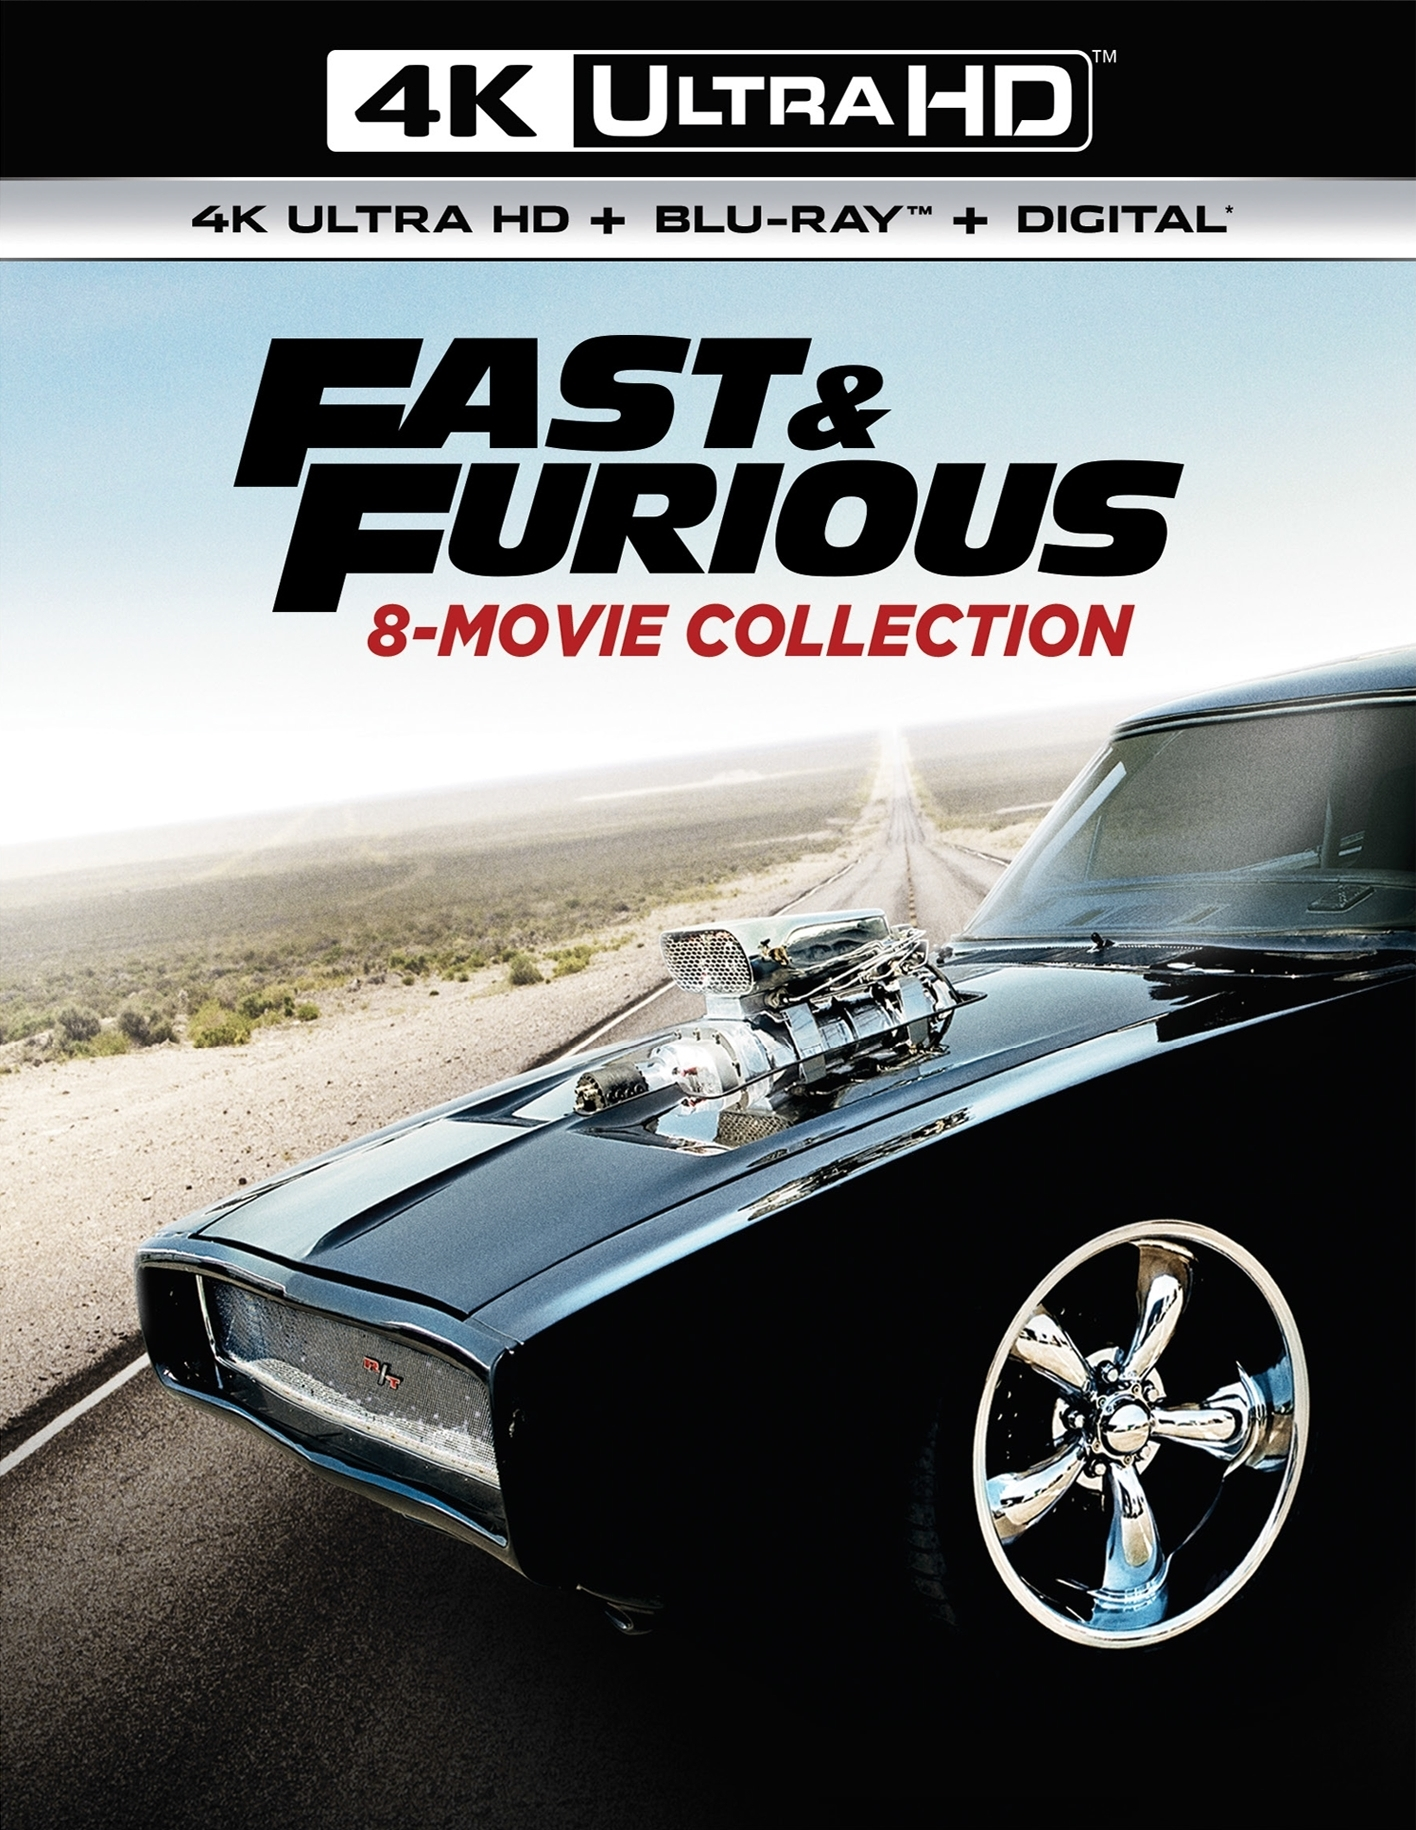 Fast & Furious 8-Movie Collection (4K Ultra HD Blu-ray)(Pre-order / Jun 11)